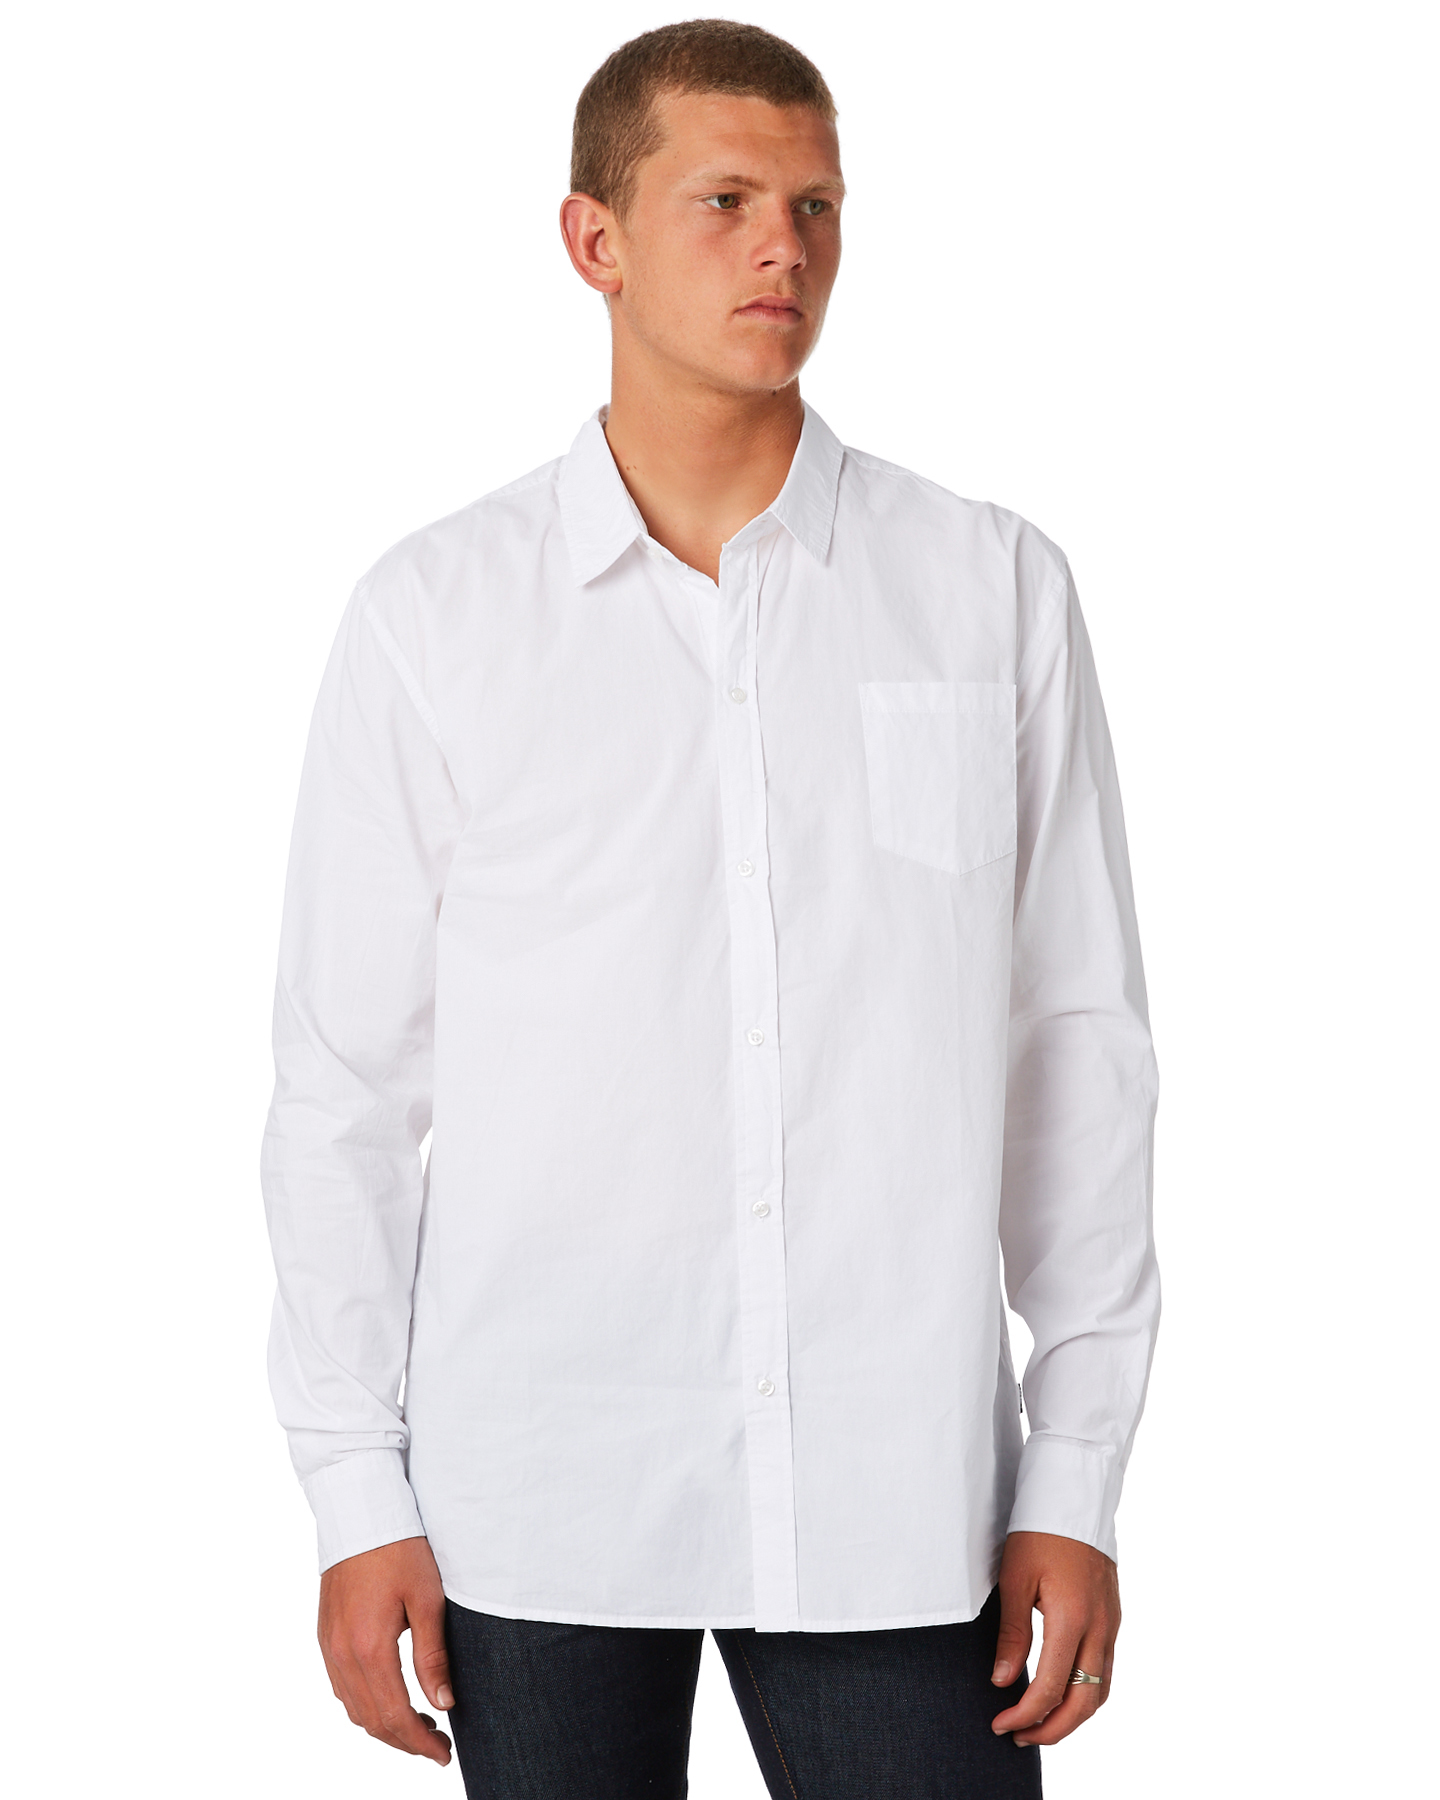 Swell Ls Mens Shirt White